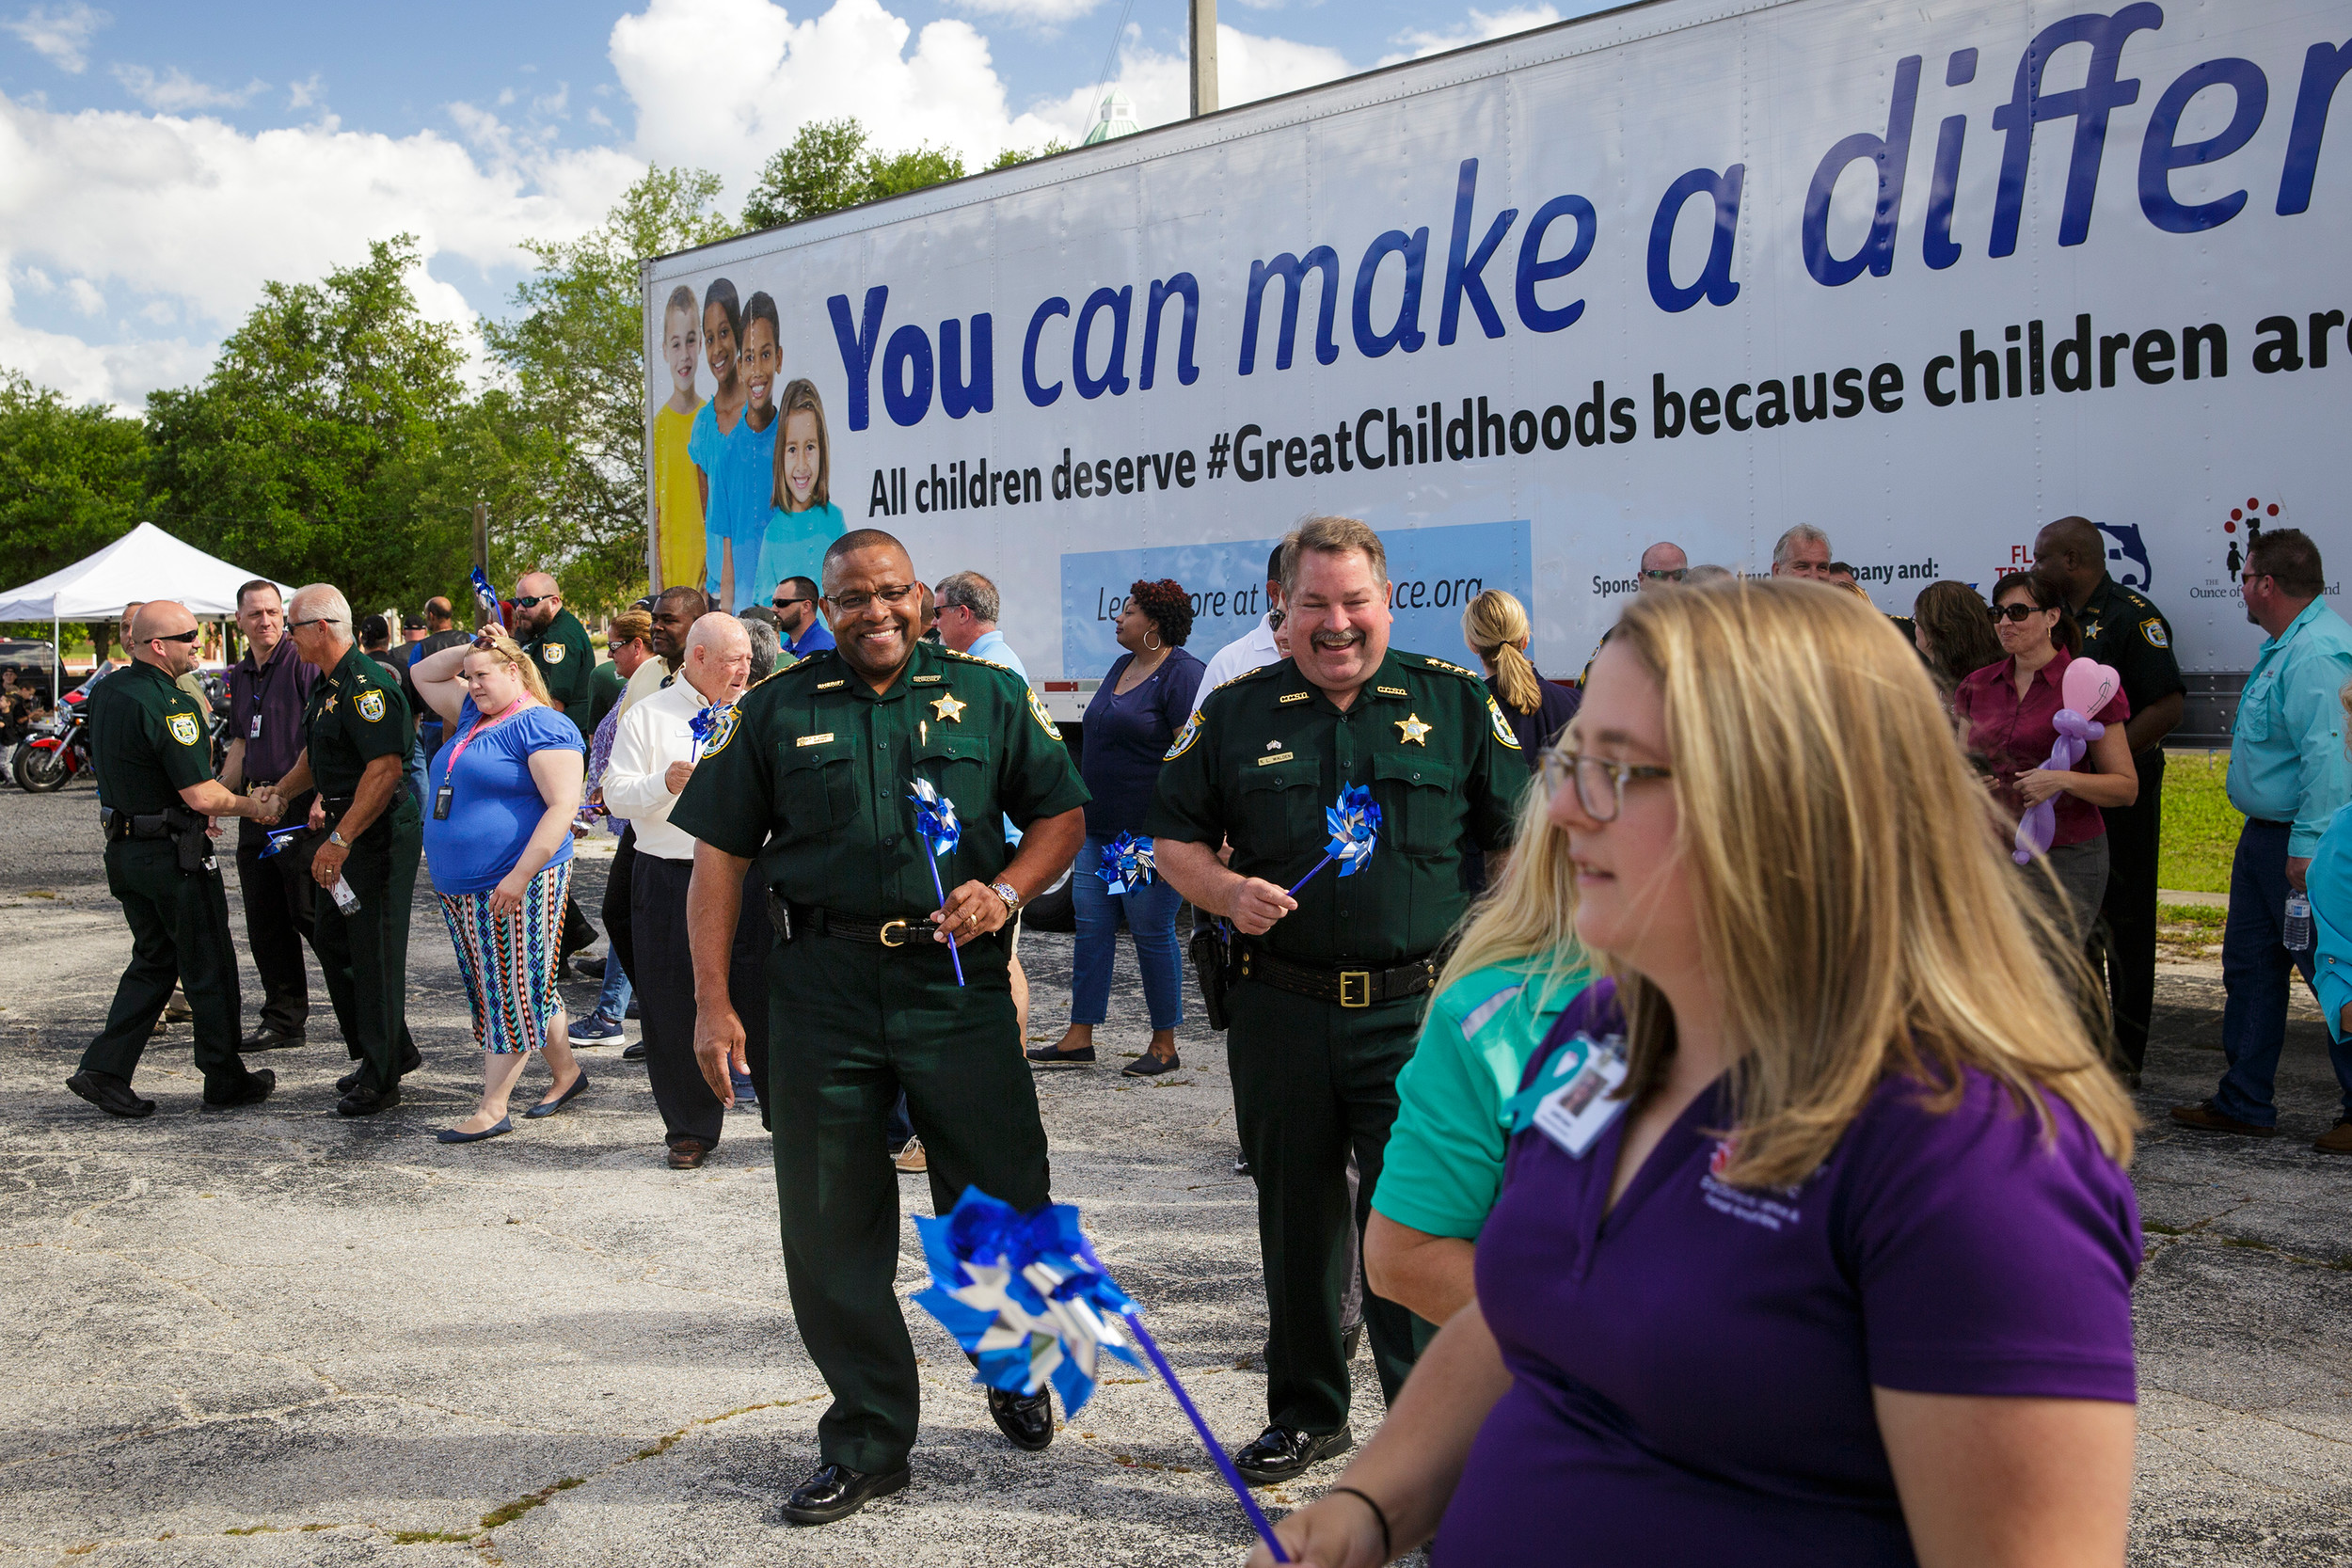 Clay County Sheriff Daryl Daniels, center, walks with a blue pinwheel after participating in a group photo at Green Cove Springs' Child Abuse Awareness Day held in conjunction with national Child Abuse Prevention month.